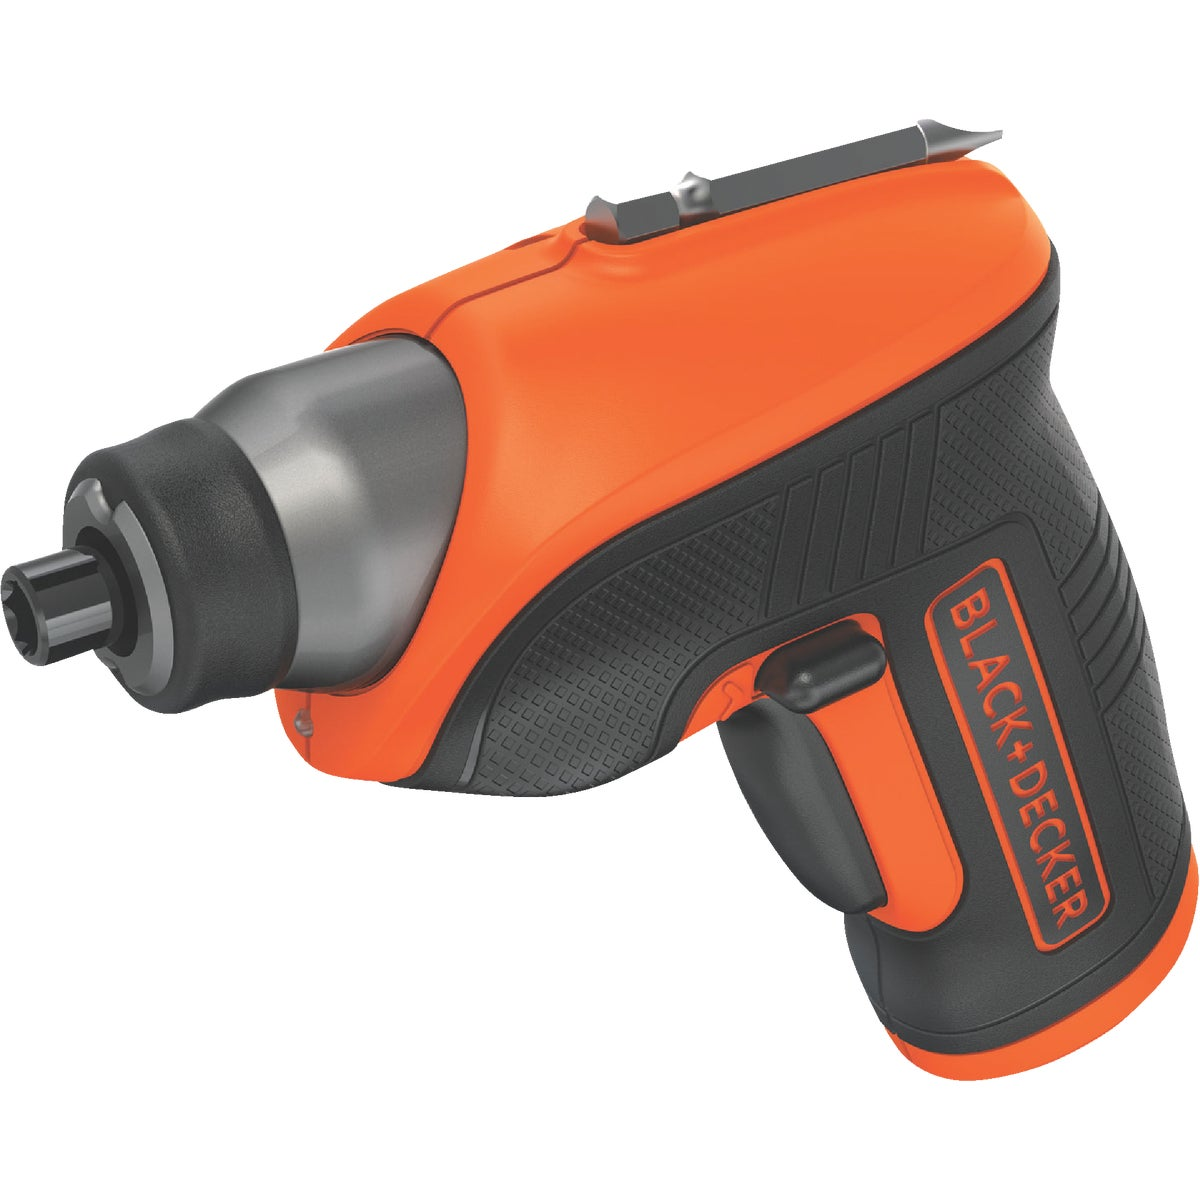 3.6V SCREWDRIVER - LI3100 by Black & Decker